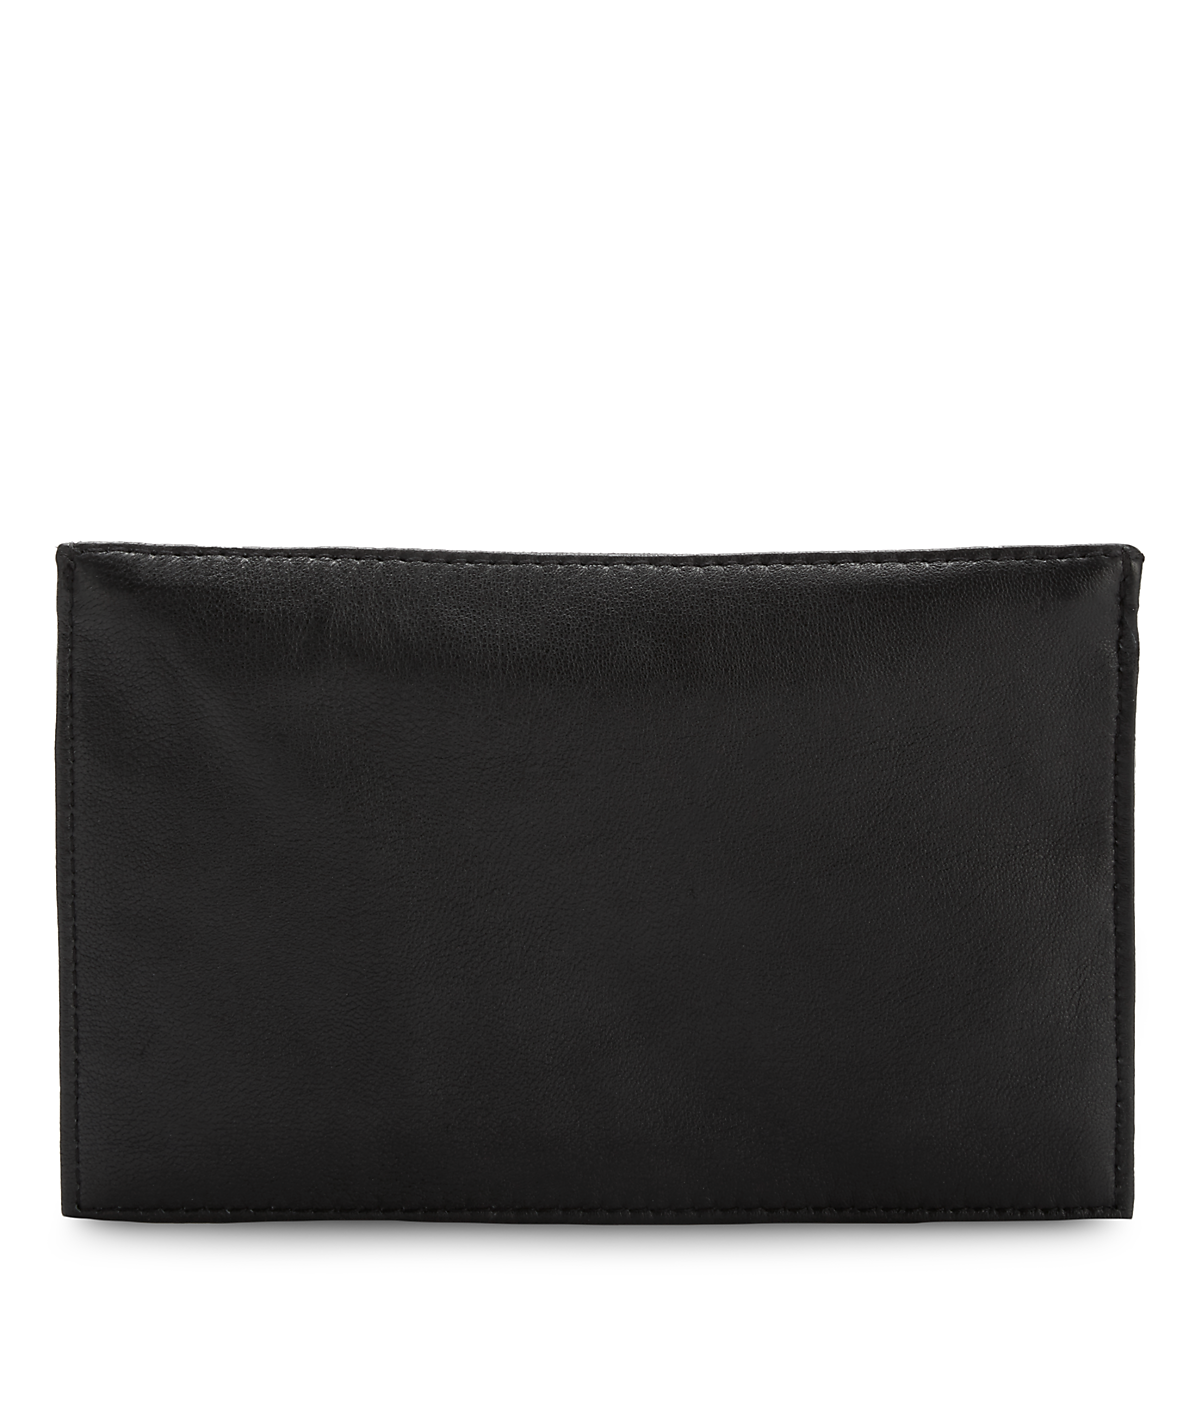 Cosmetic bag Kiwi F7 from liebeskind